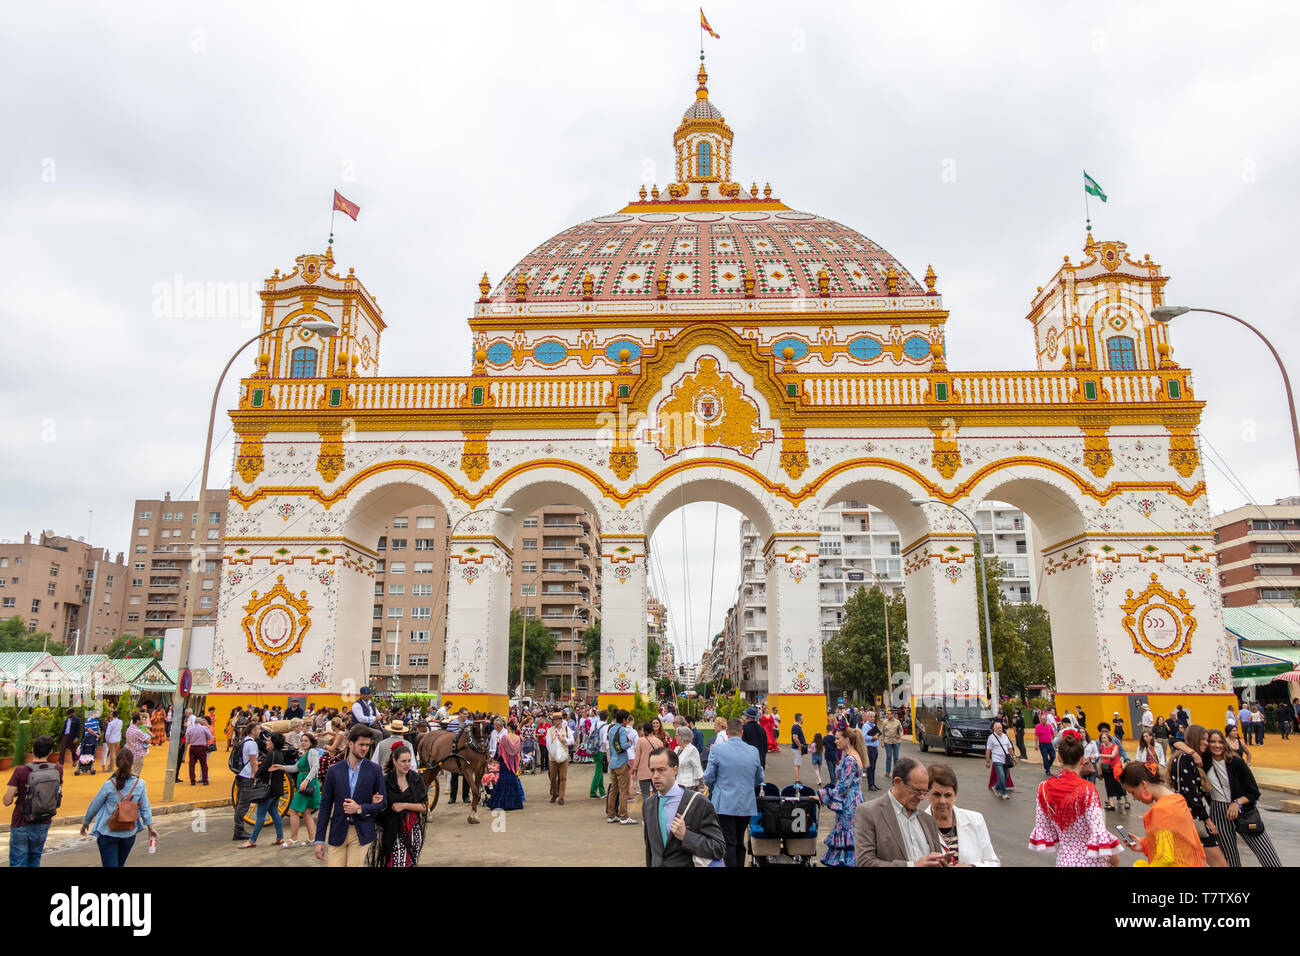 Seville, Spain - May 5, 2019: The main door of the Fair of Seville on May, 5, 2019 in Seville, Spain - Stock Image